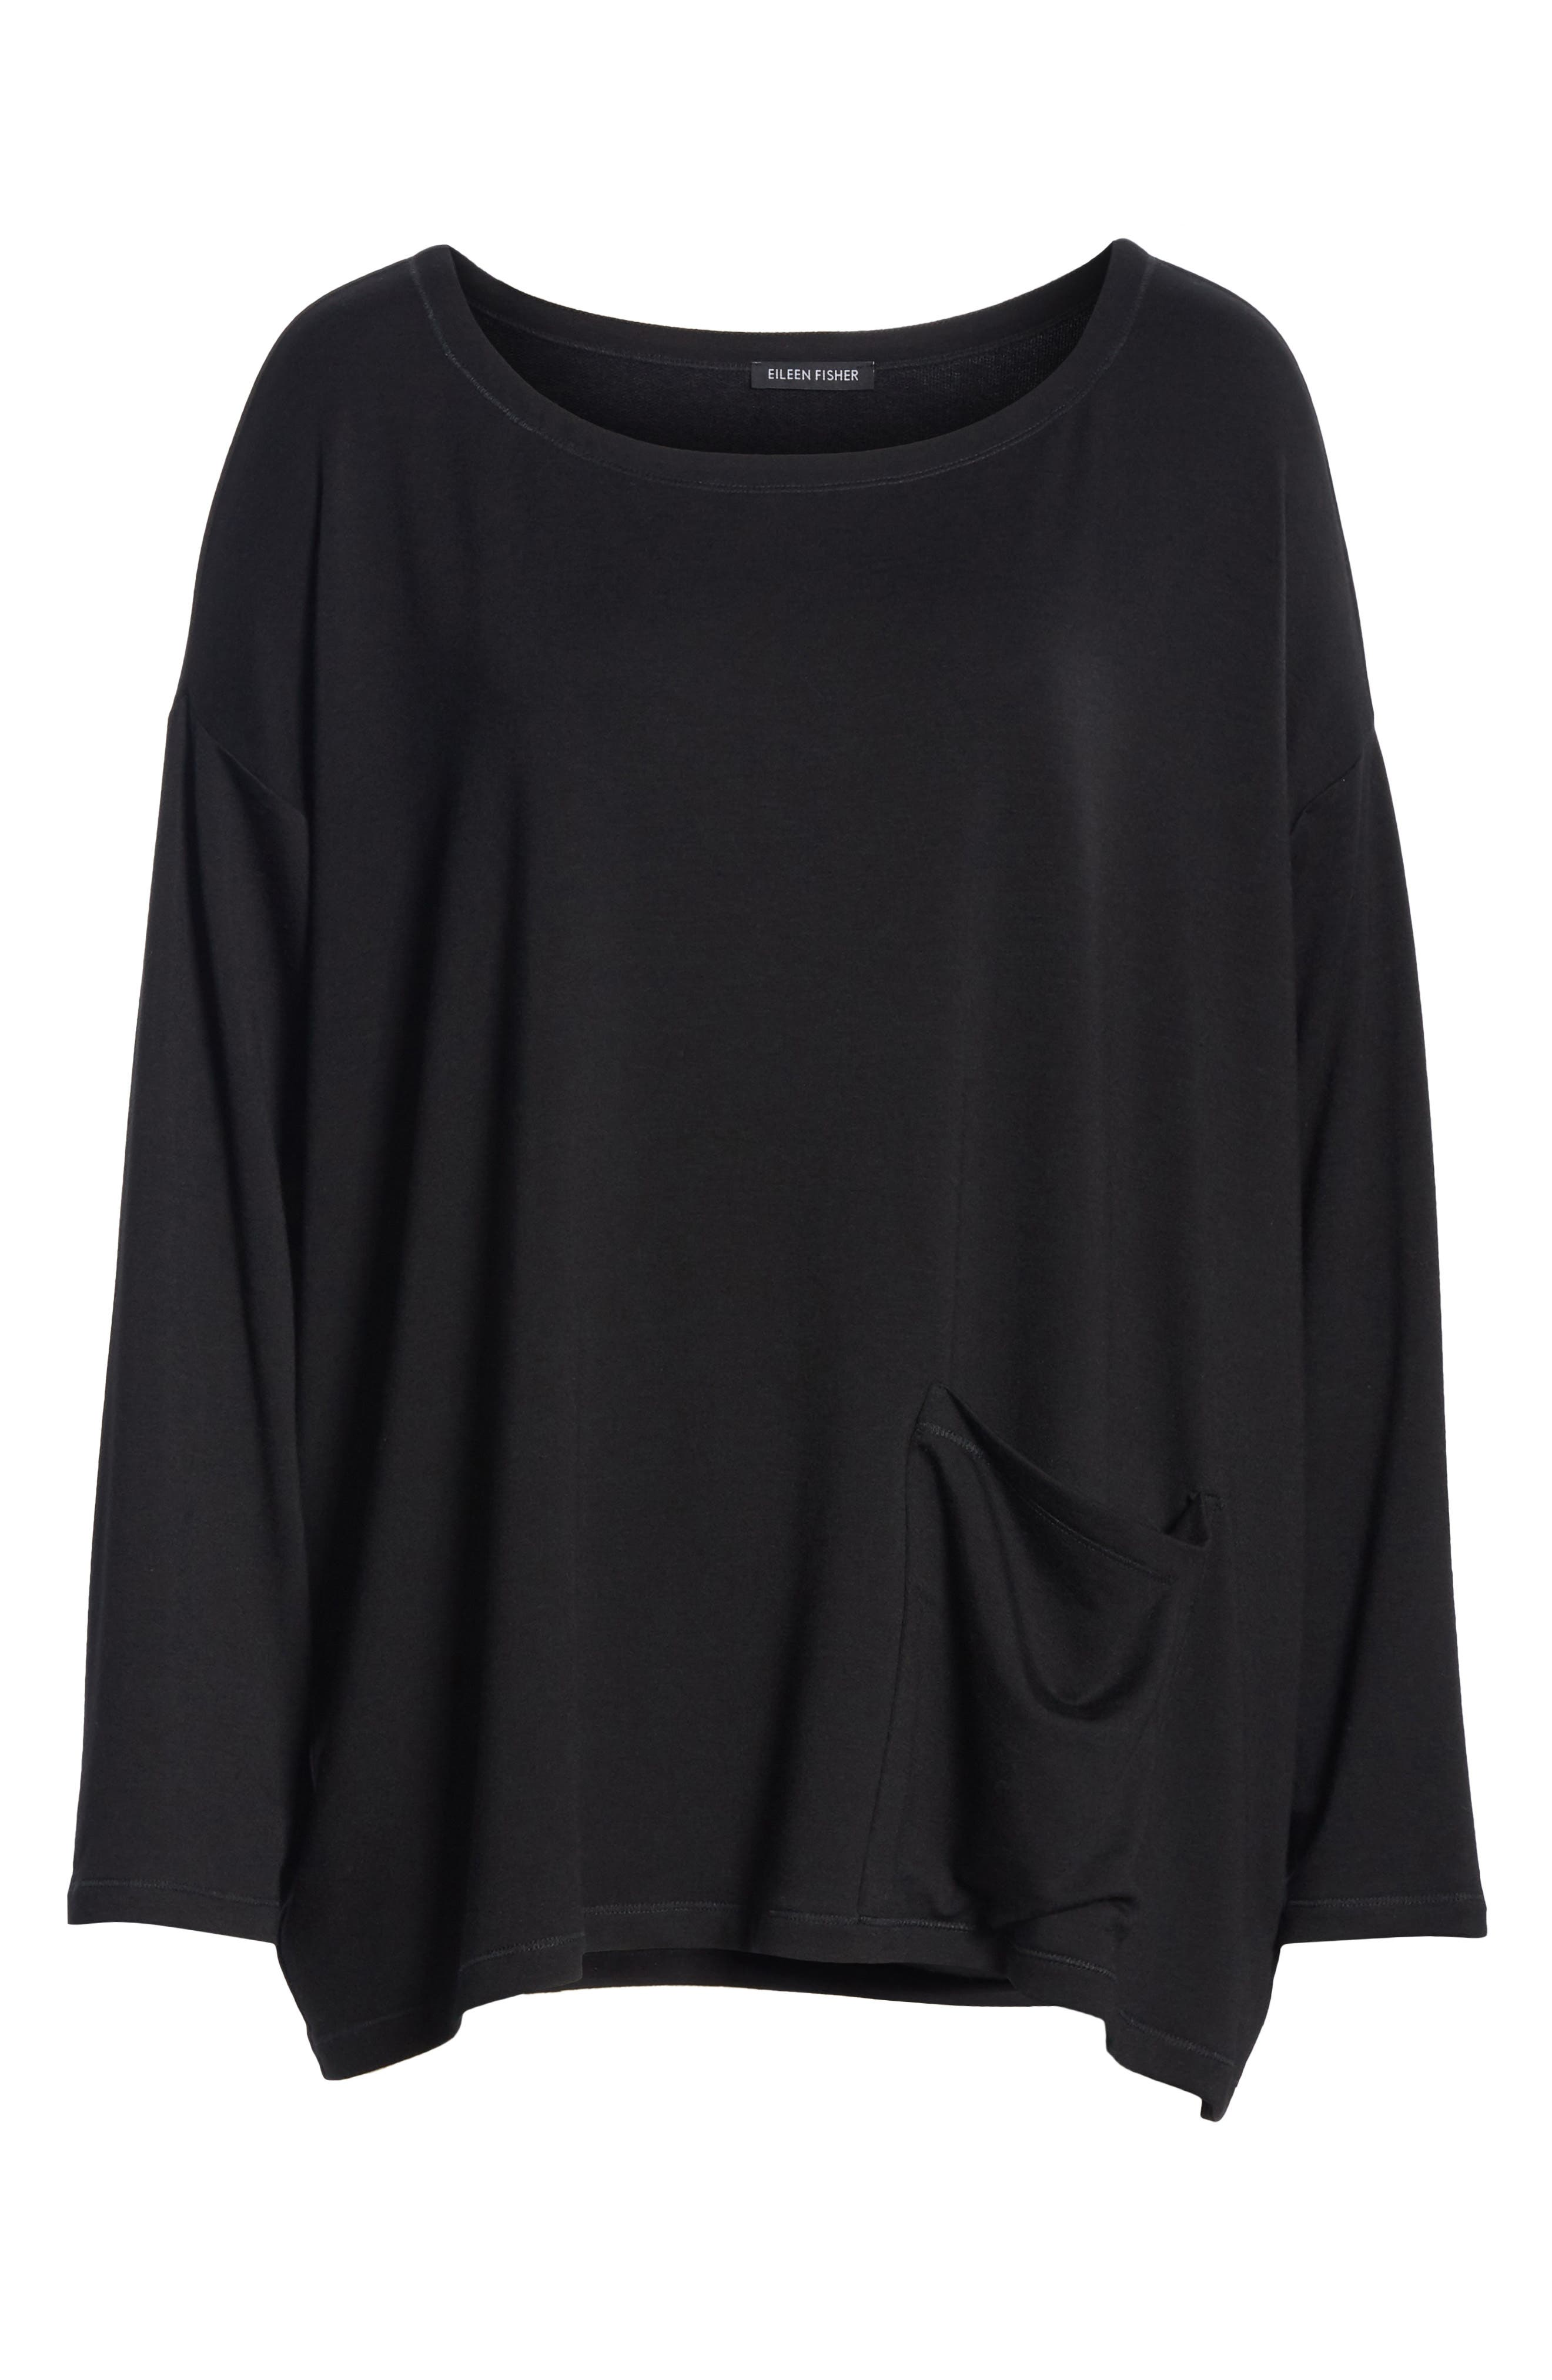 EILEEN FISHER, Stretch Terry Top, Alternate thumbnail 6, color, BLACK